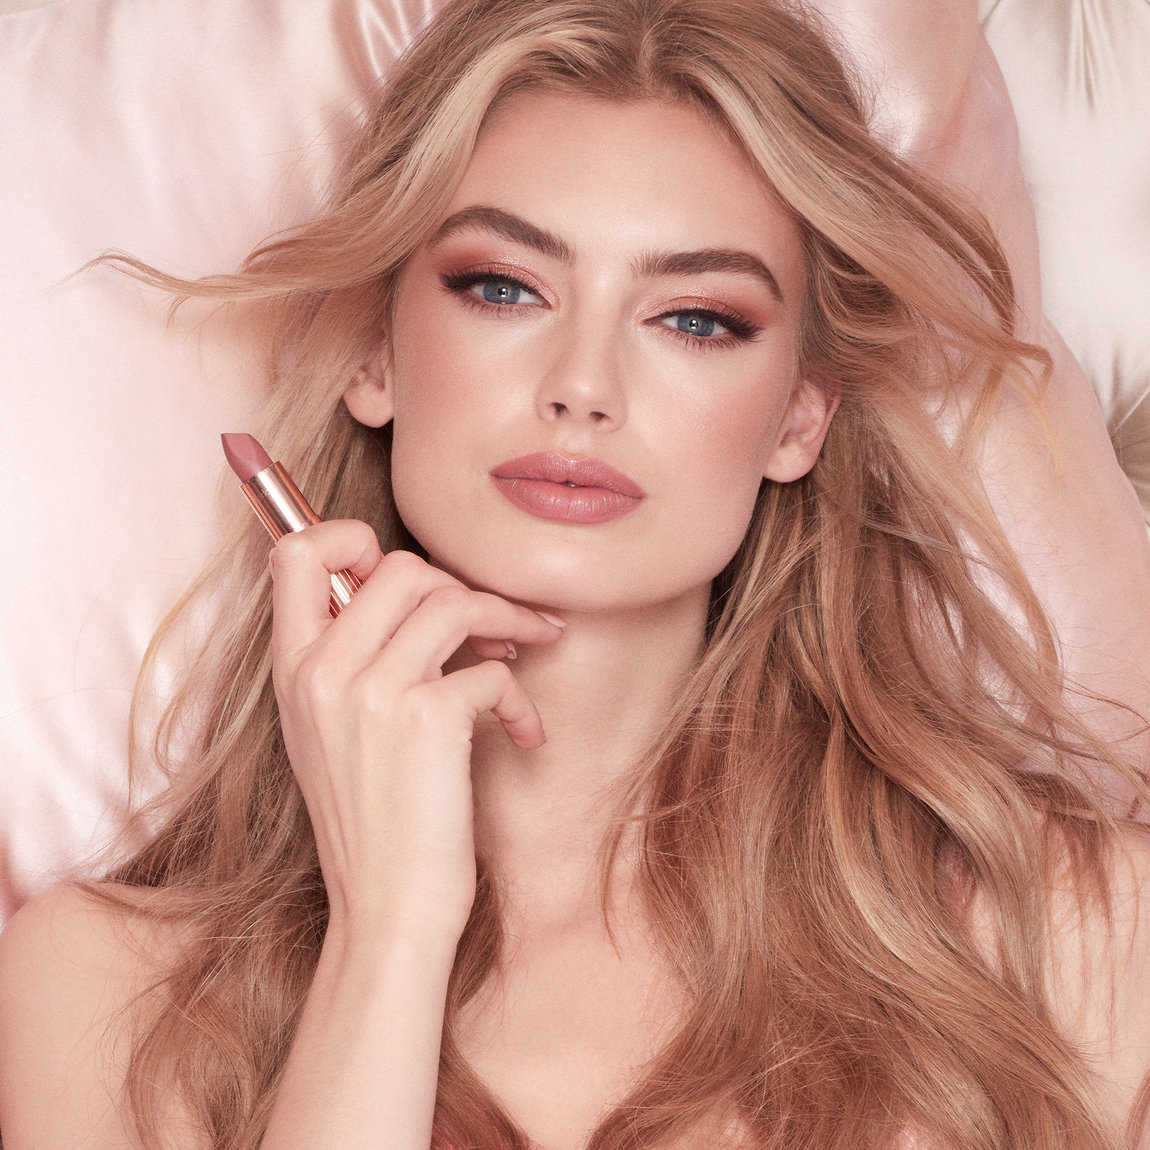 Charlotte Tilbury Get the Look The Pillow Talk product swatch.